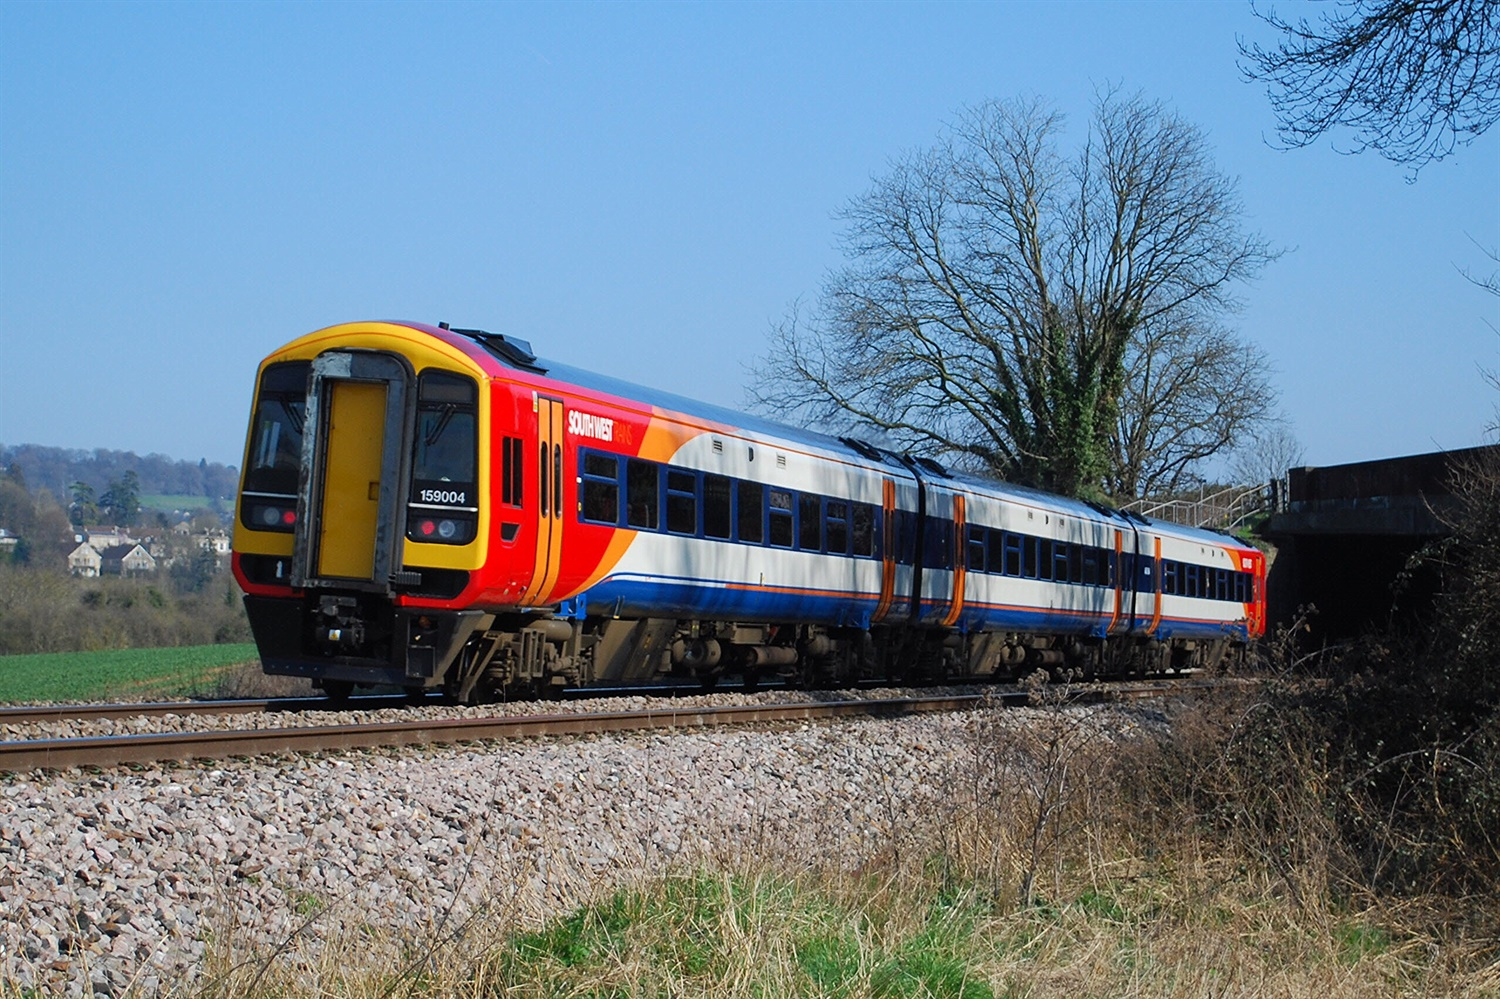 SWT adds more services and links to West of England Main Line